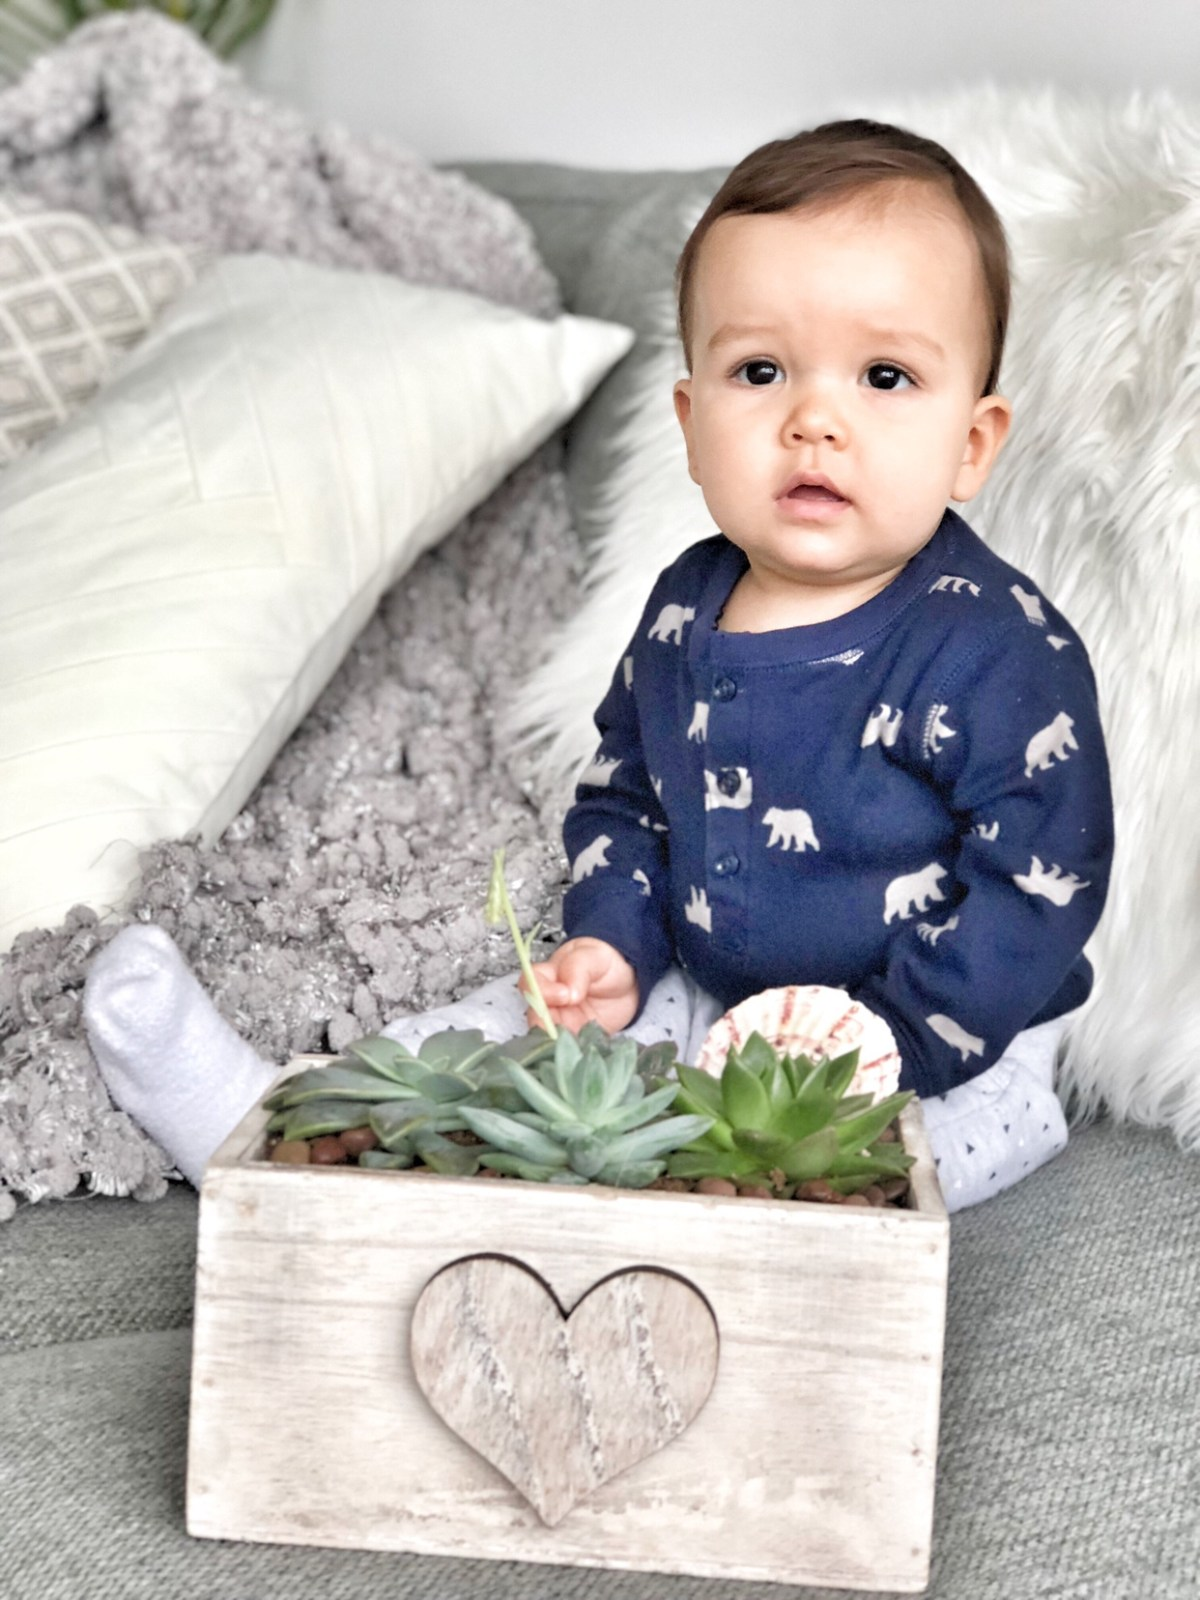 baby with cactus planter